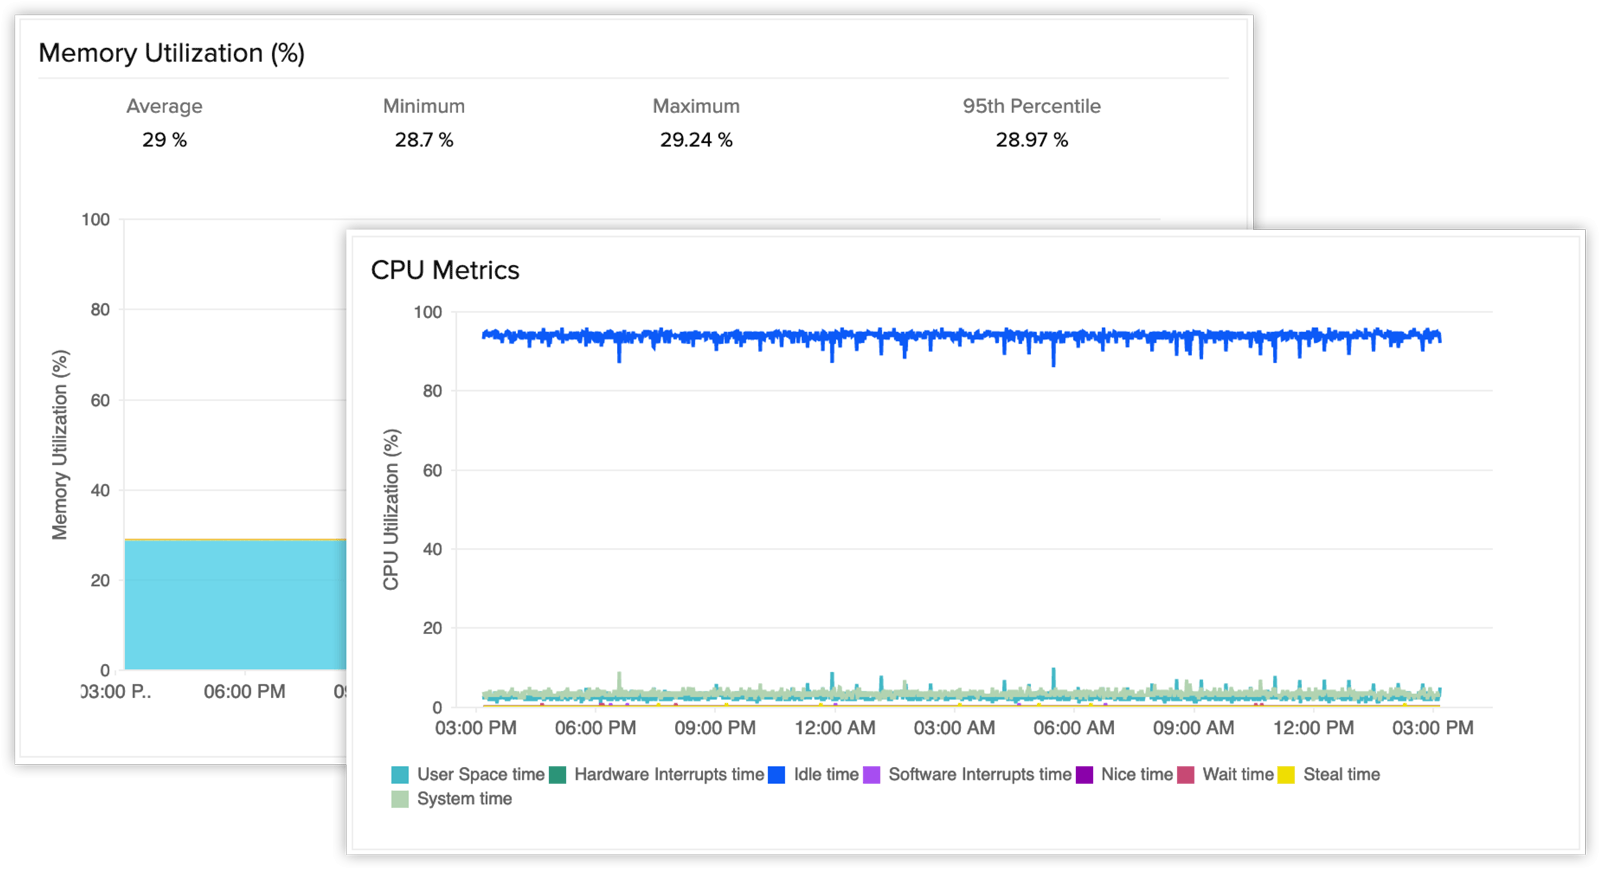 Memory utilization of EC2 and the corresponding time-series graphs for CPU metrics.